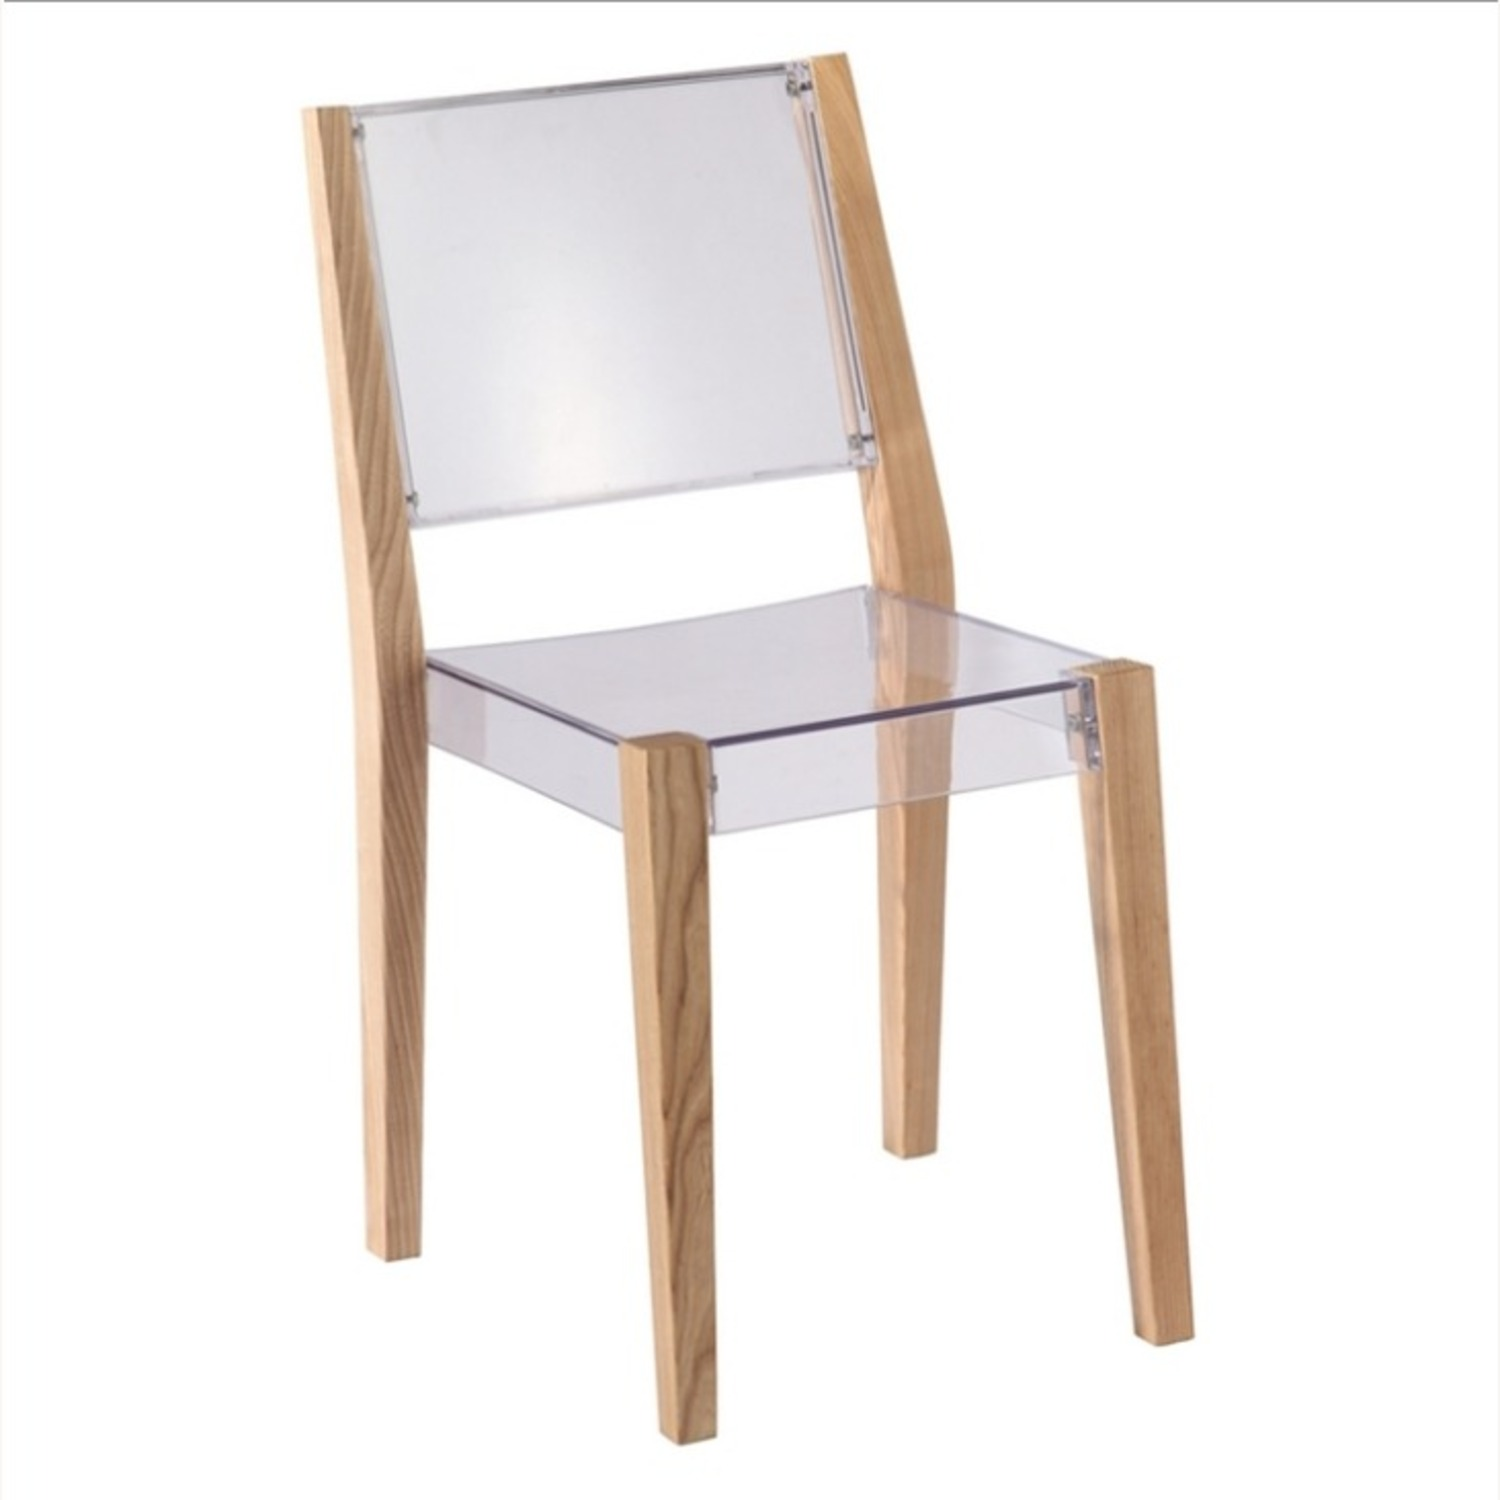 Side Chair In Natural Wood & Transparent Seat - image-0